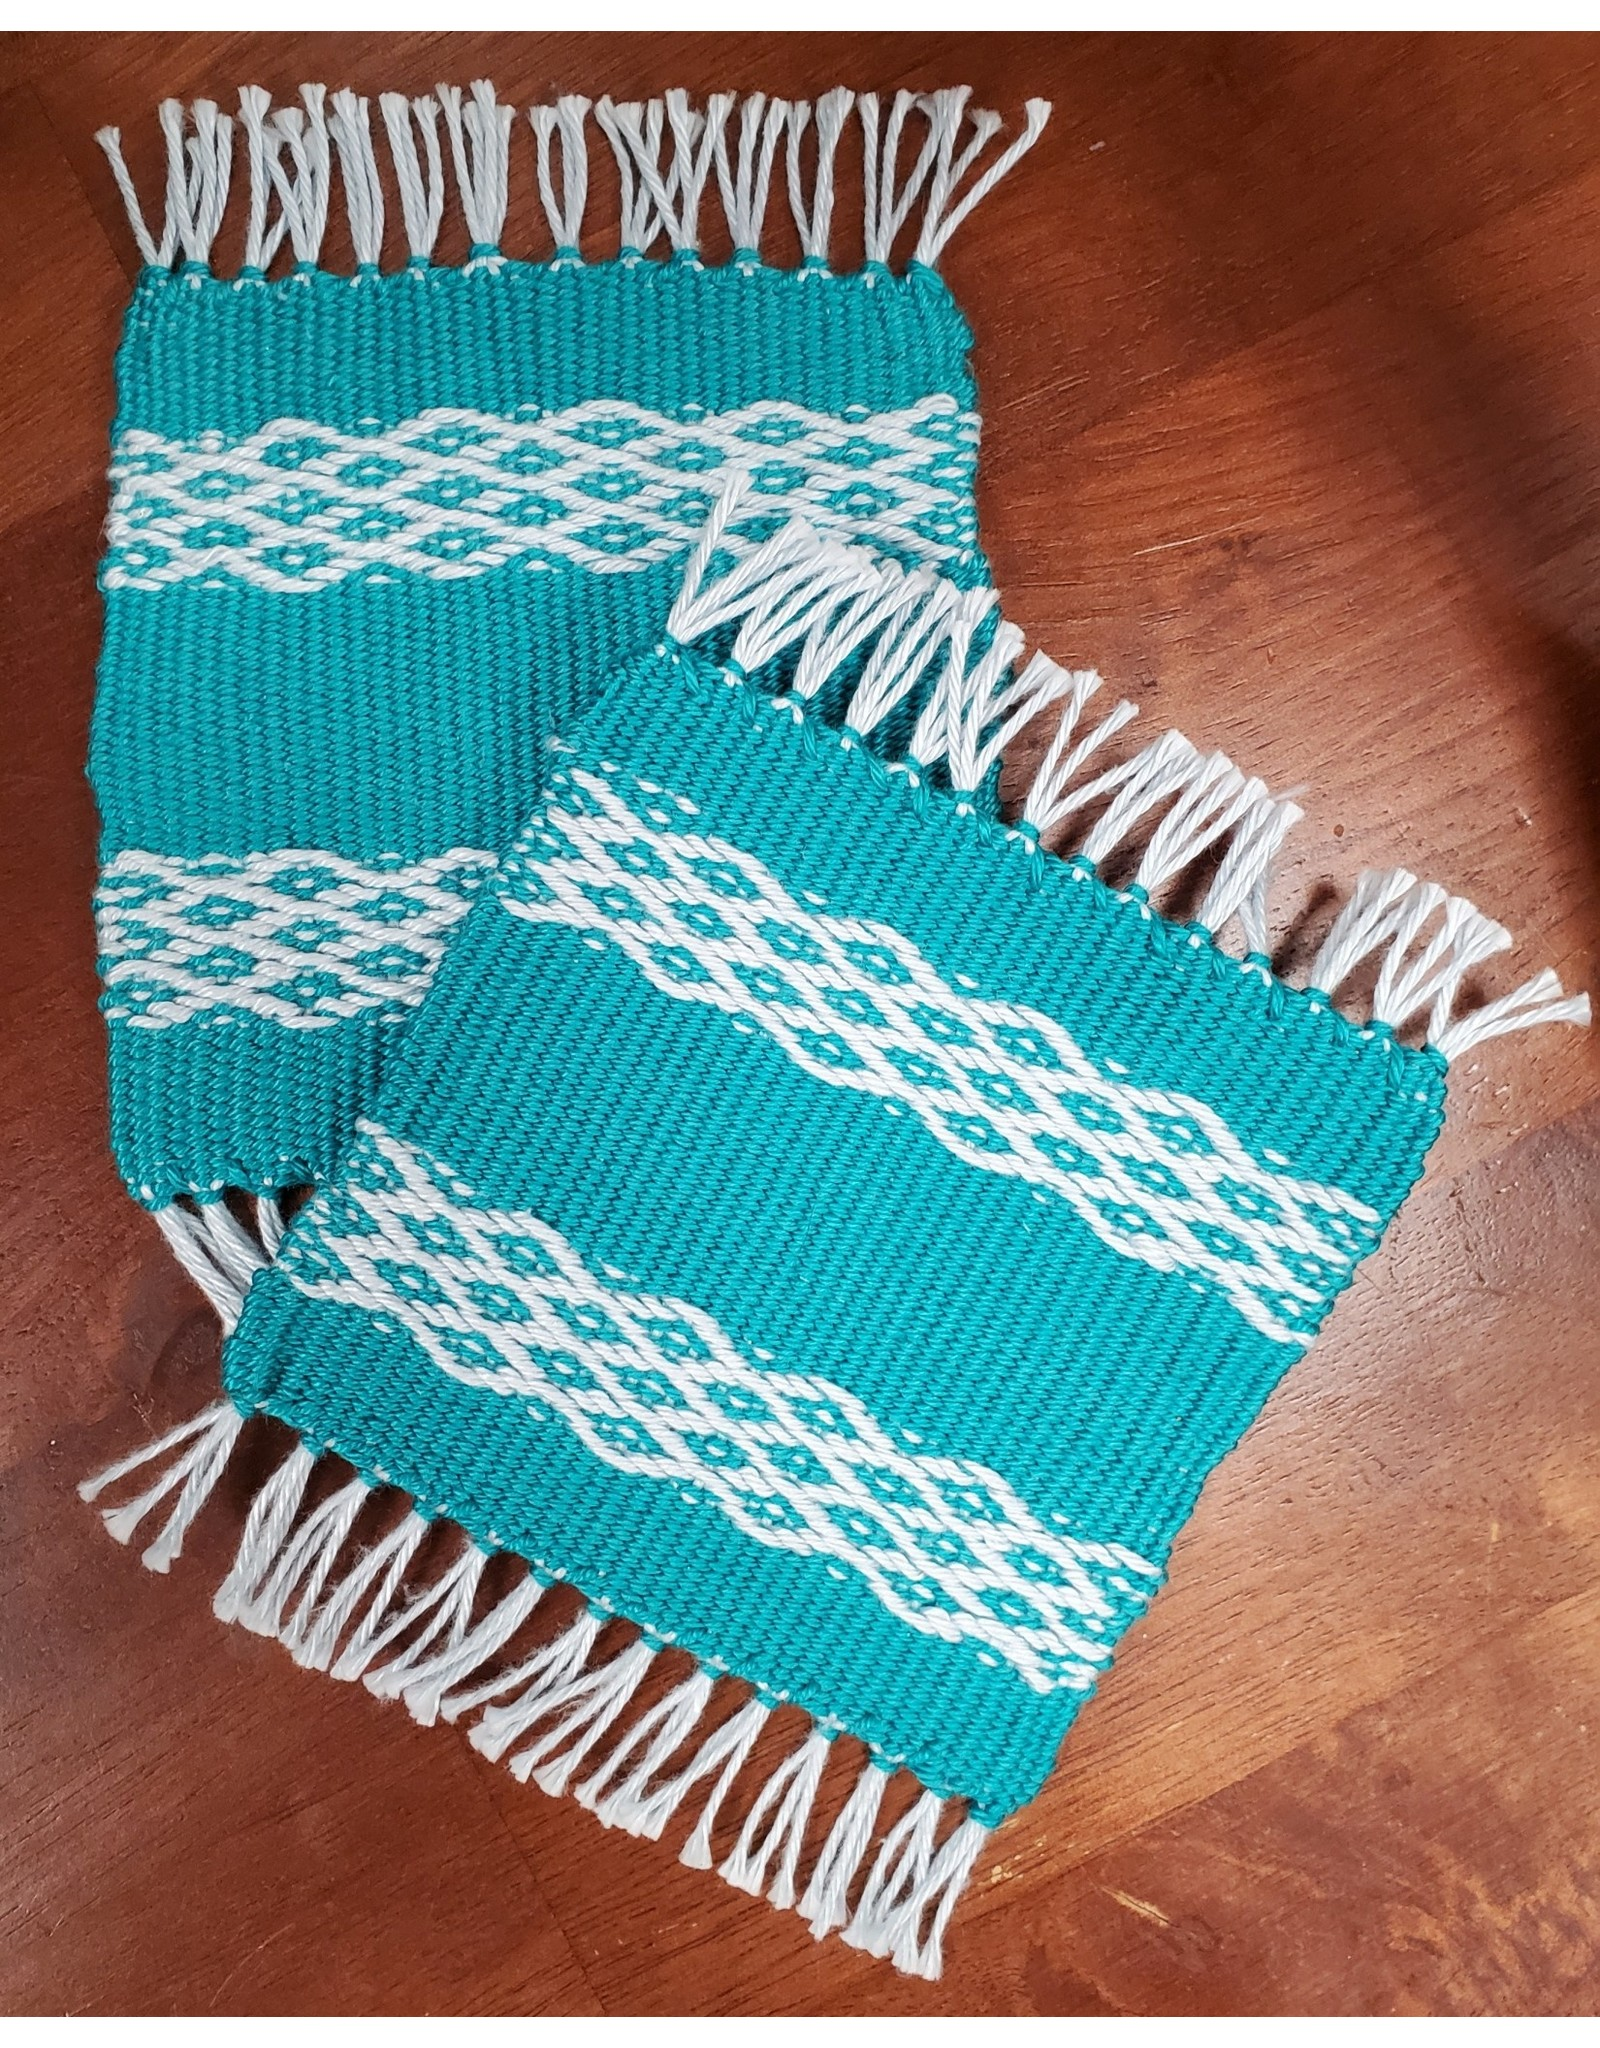 The New Knittery Weaving Coasters on a Rigid Heddle Loom, Sunday Oct. 3, 2021